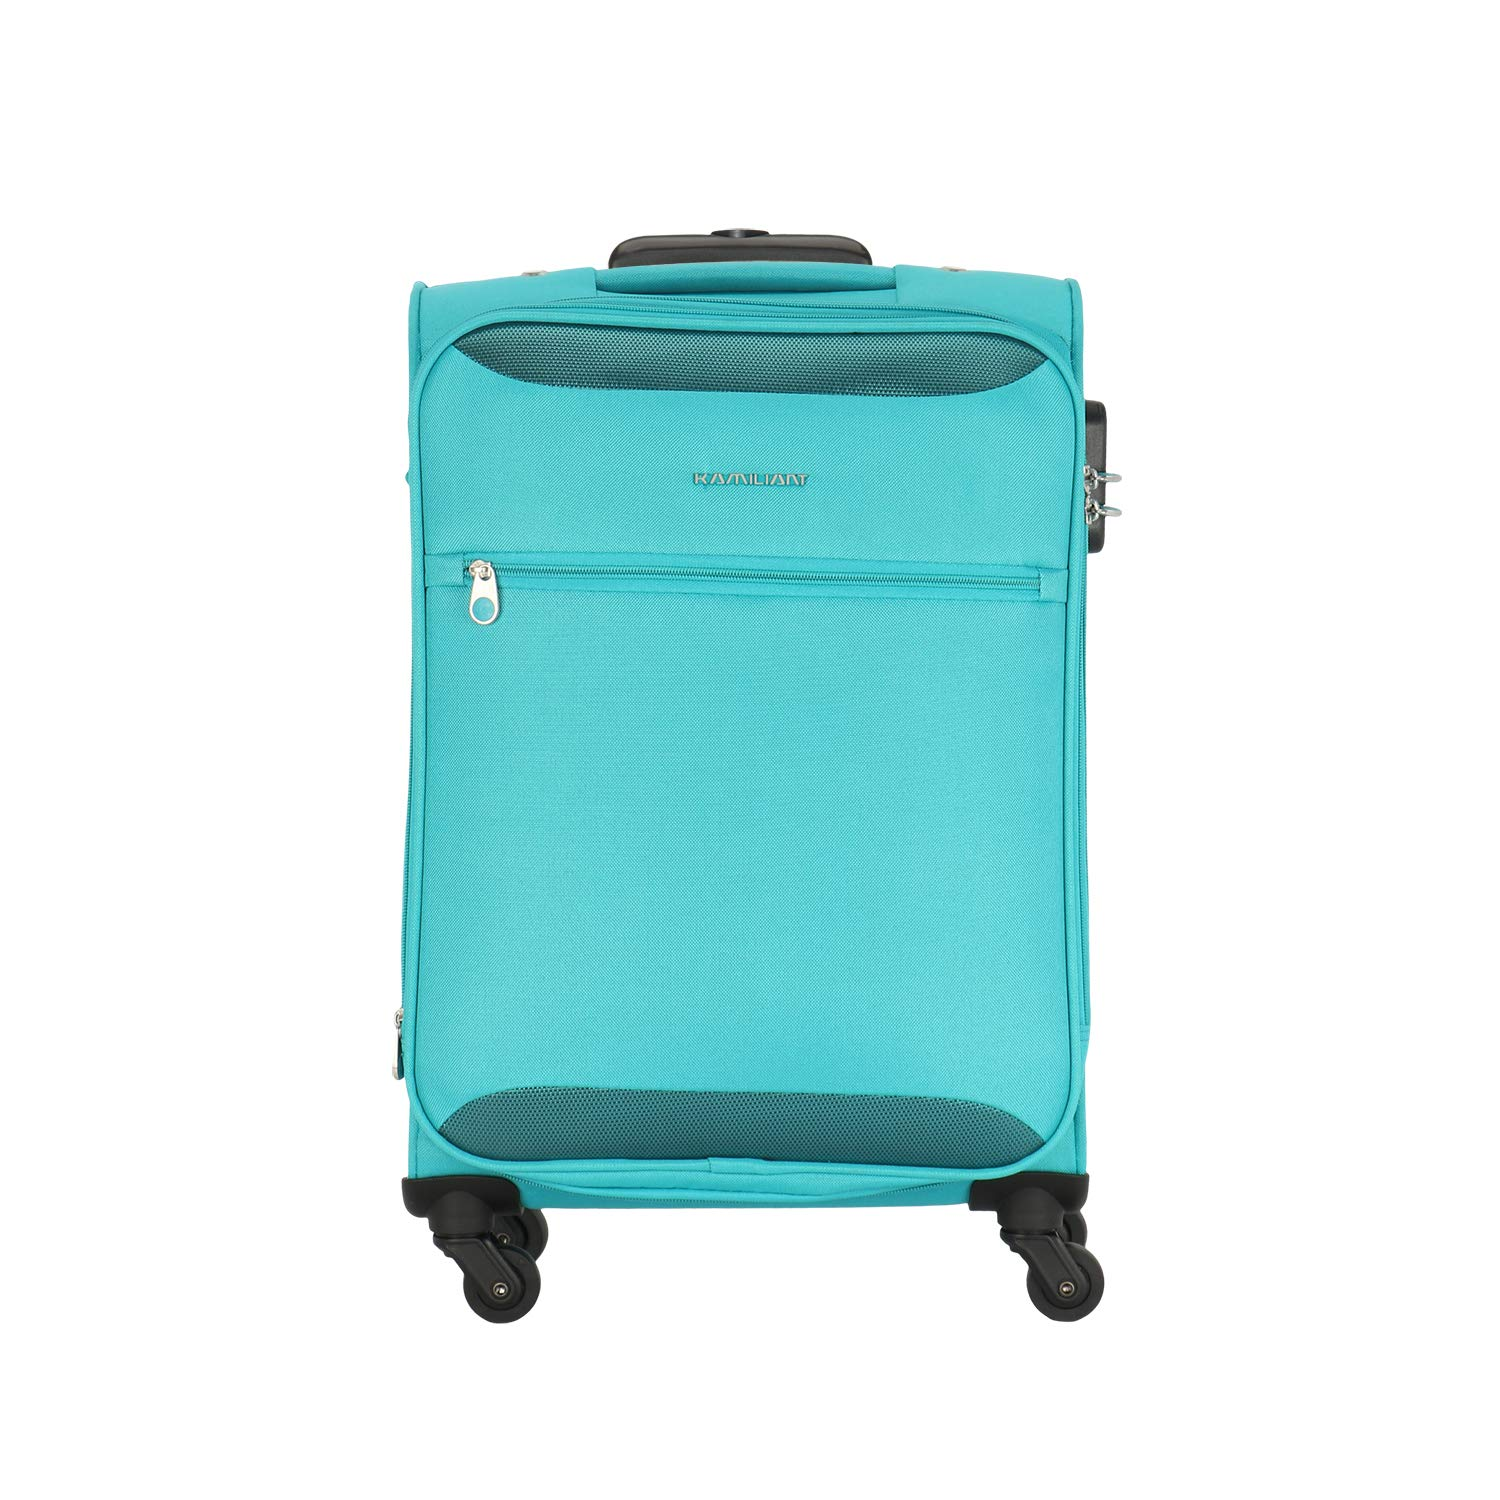 Kamiliant by American Tourister 26 inch Check-in Luggage